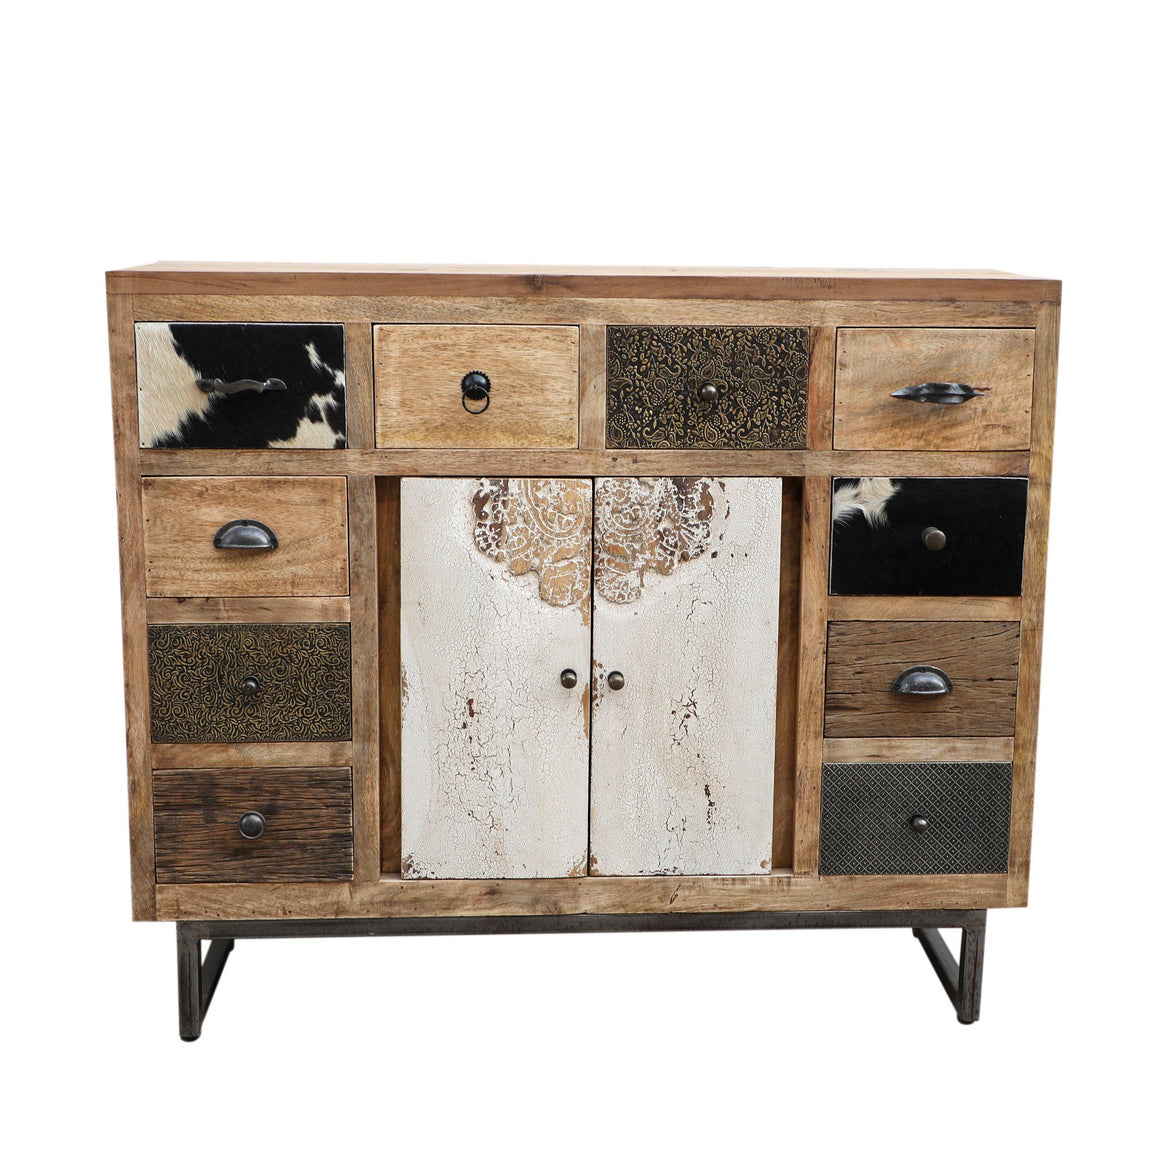 COWHIDE PATCHWORK CHEST OF DRAWERS Philbee Interiors